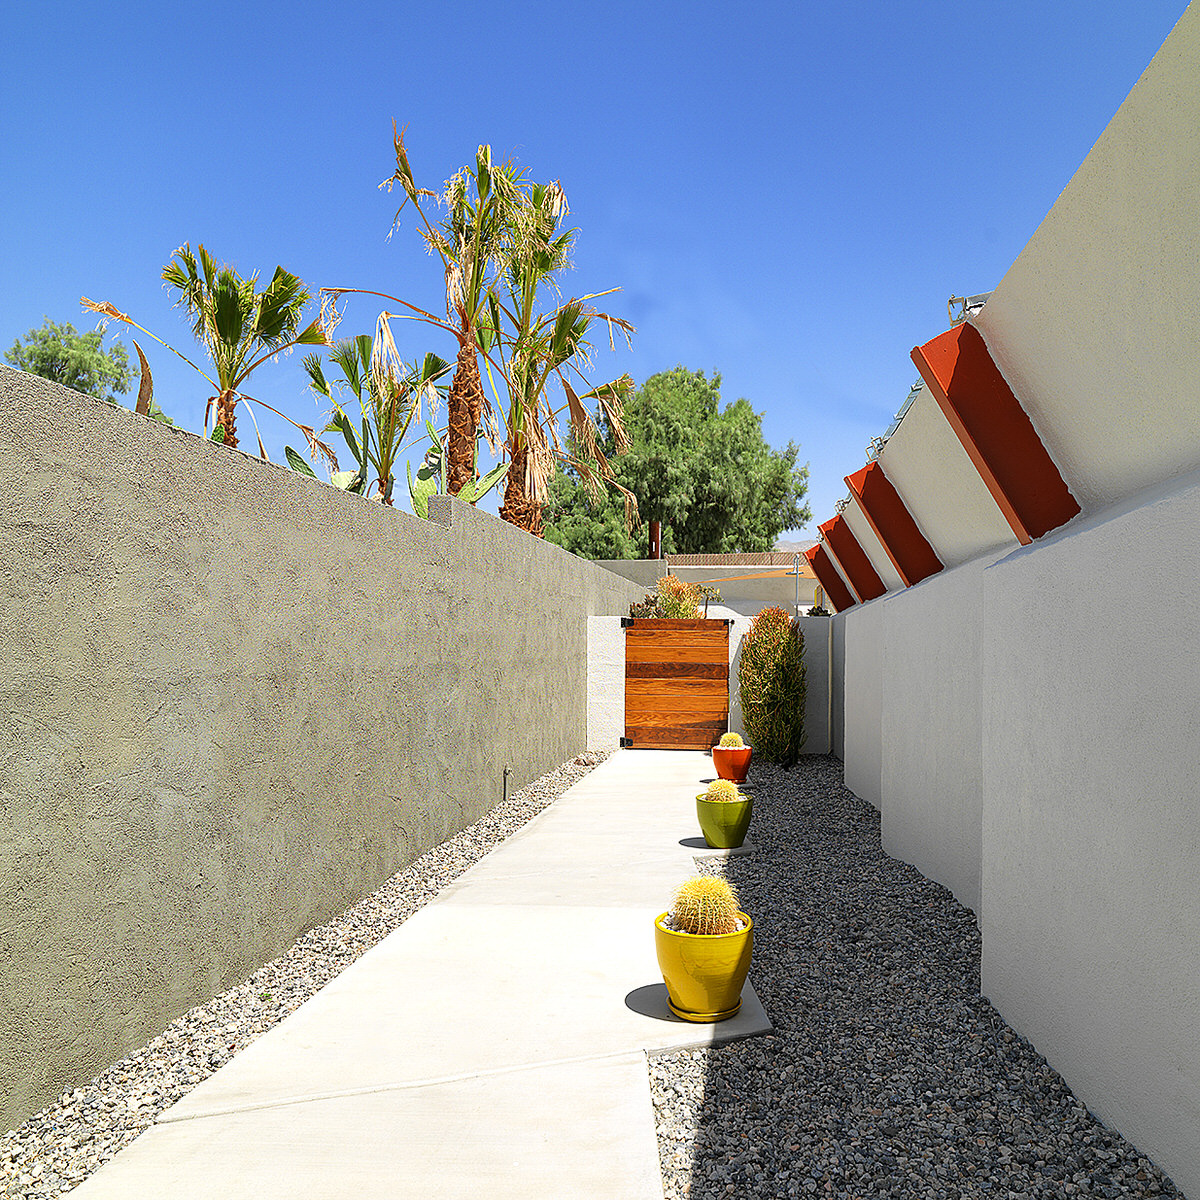 small private pool, shading small poolpalm springs, lautner hotel, contemporary desert architecture